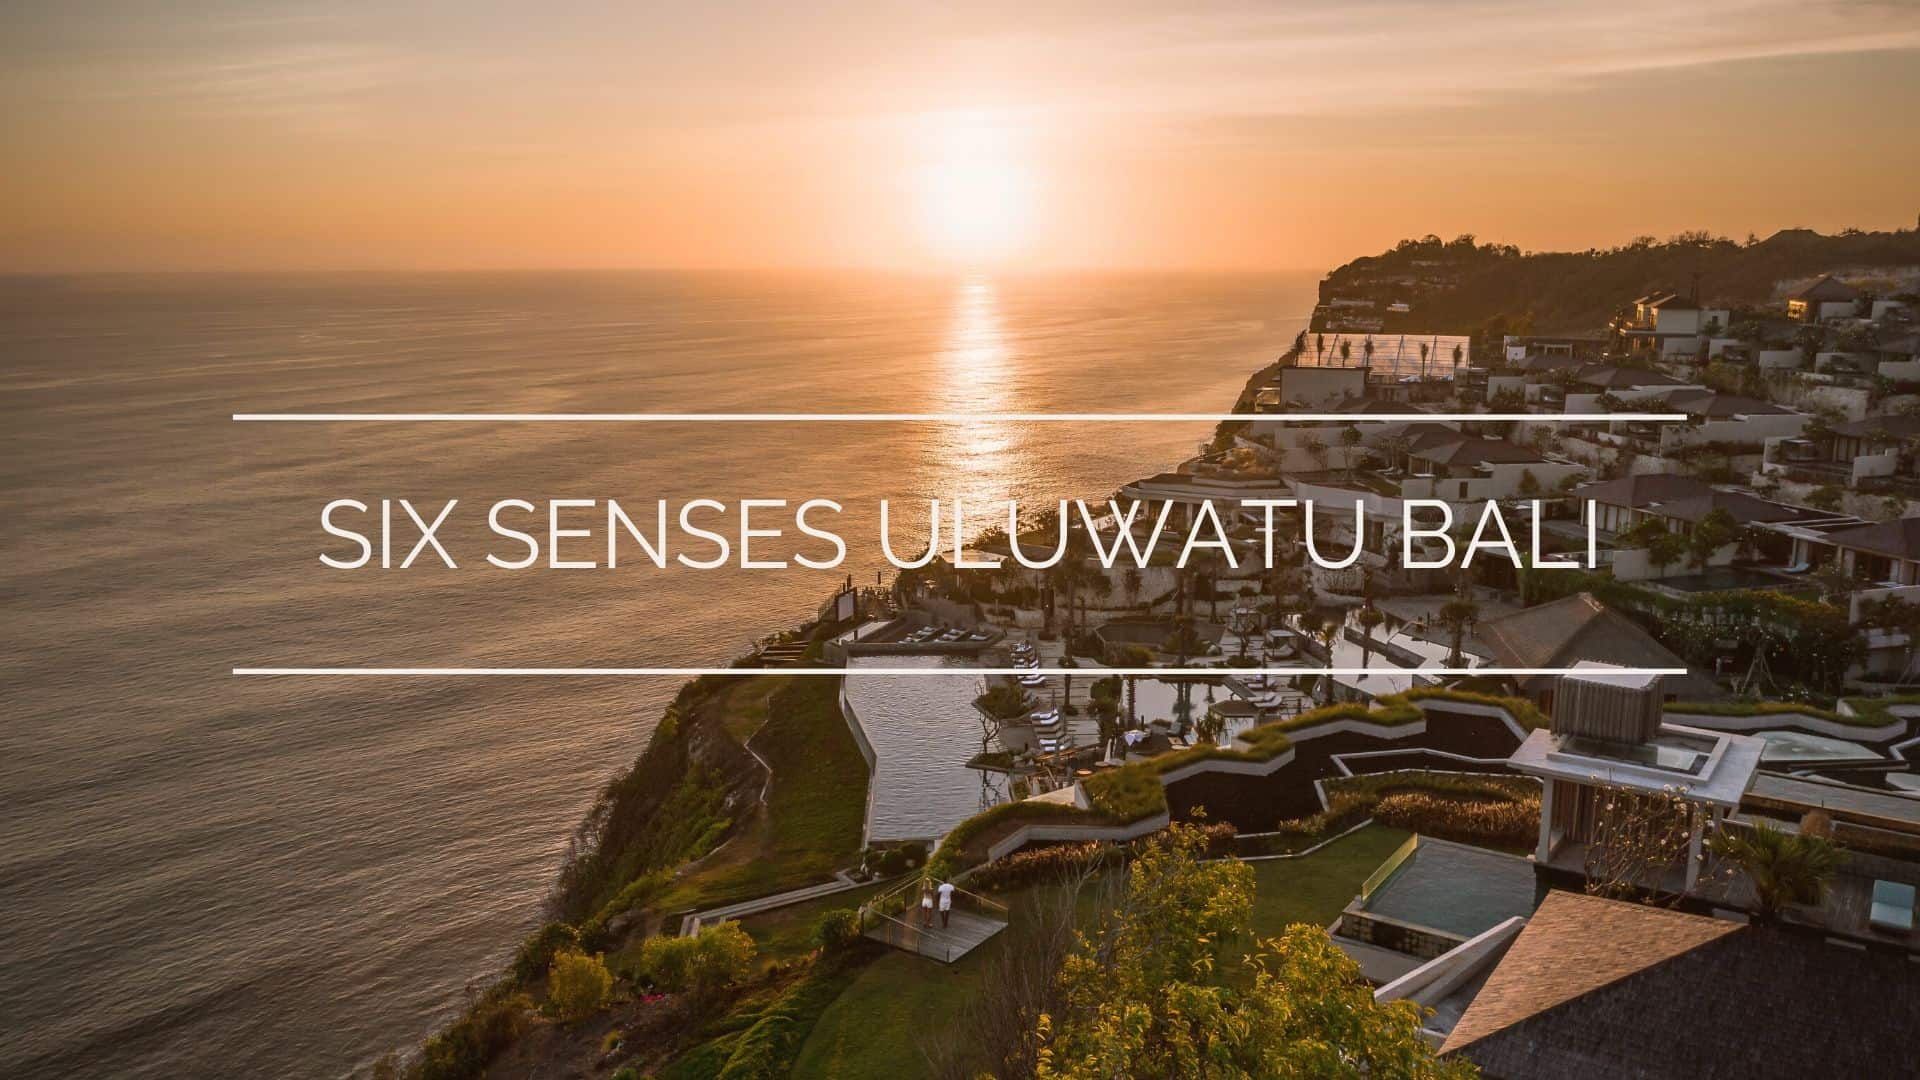 luxry-resort-promo-video-six-senses-uluwatu-bali